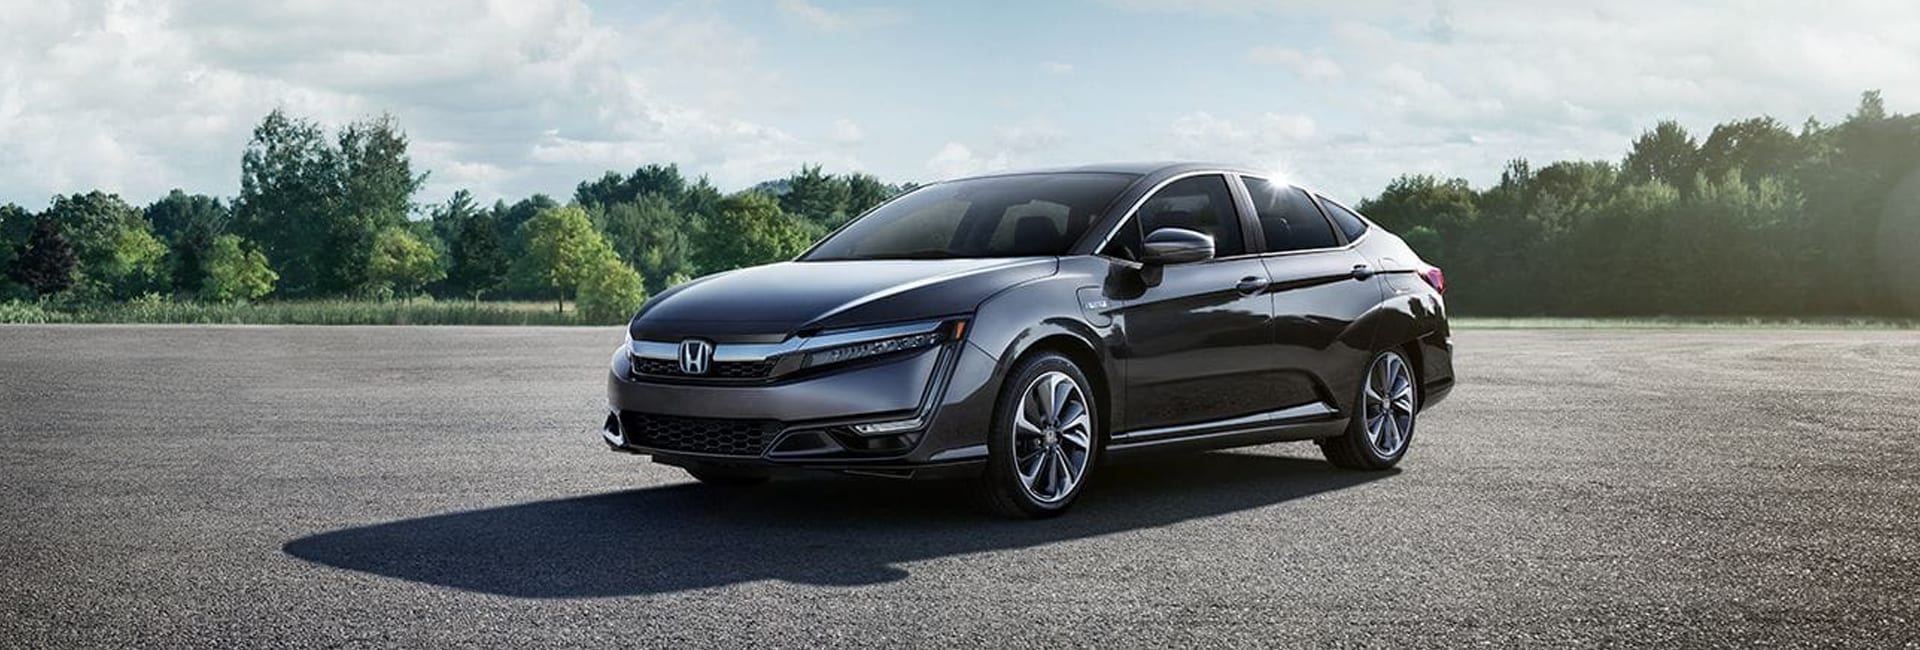 2020 Honda Clarity Exterior Features